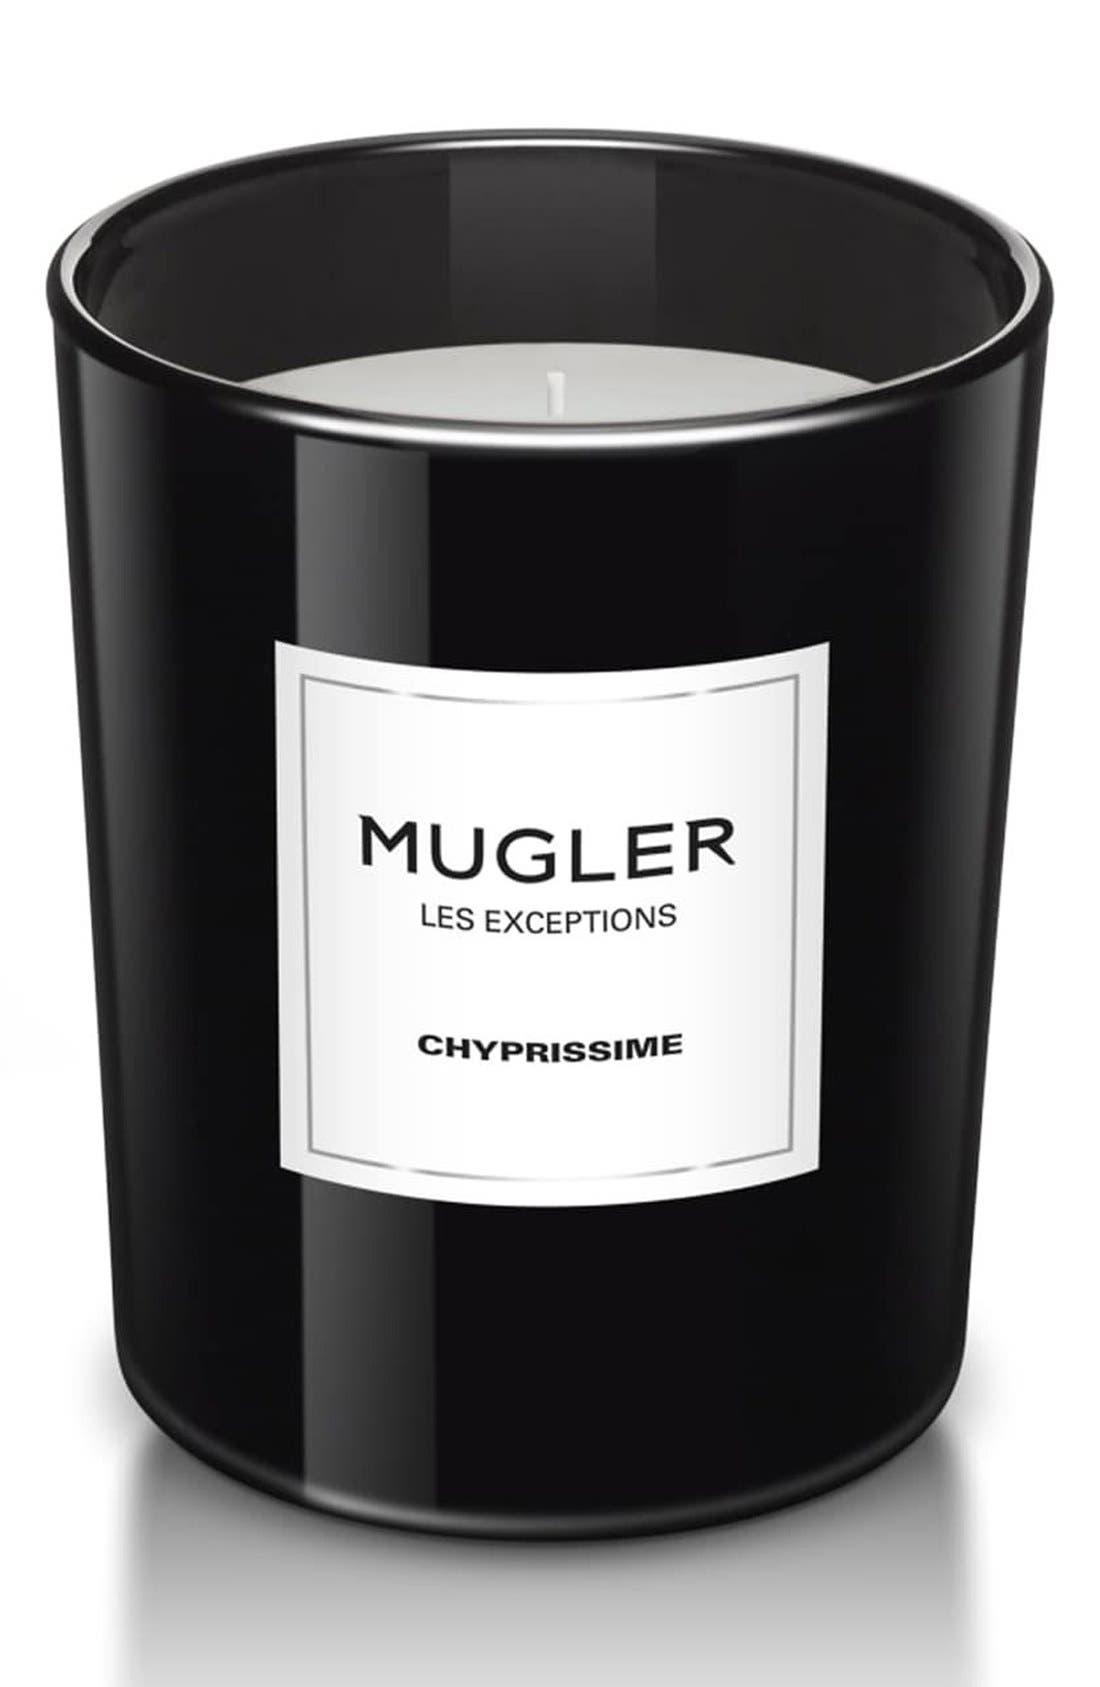 Mugler 'Les Exceptions - Chyprissime' Candle